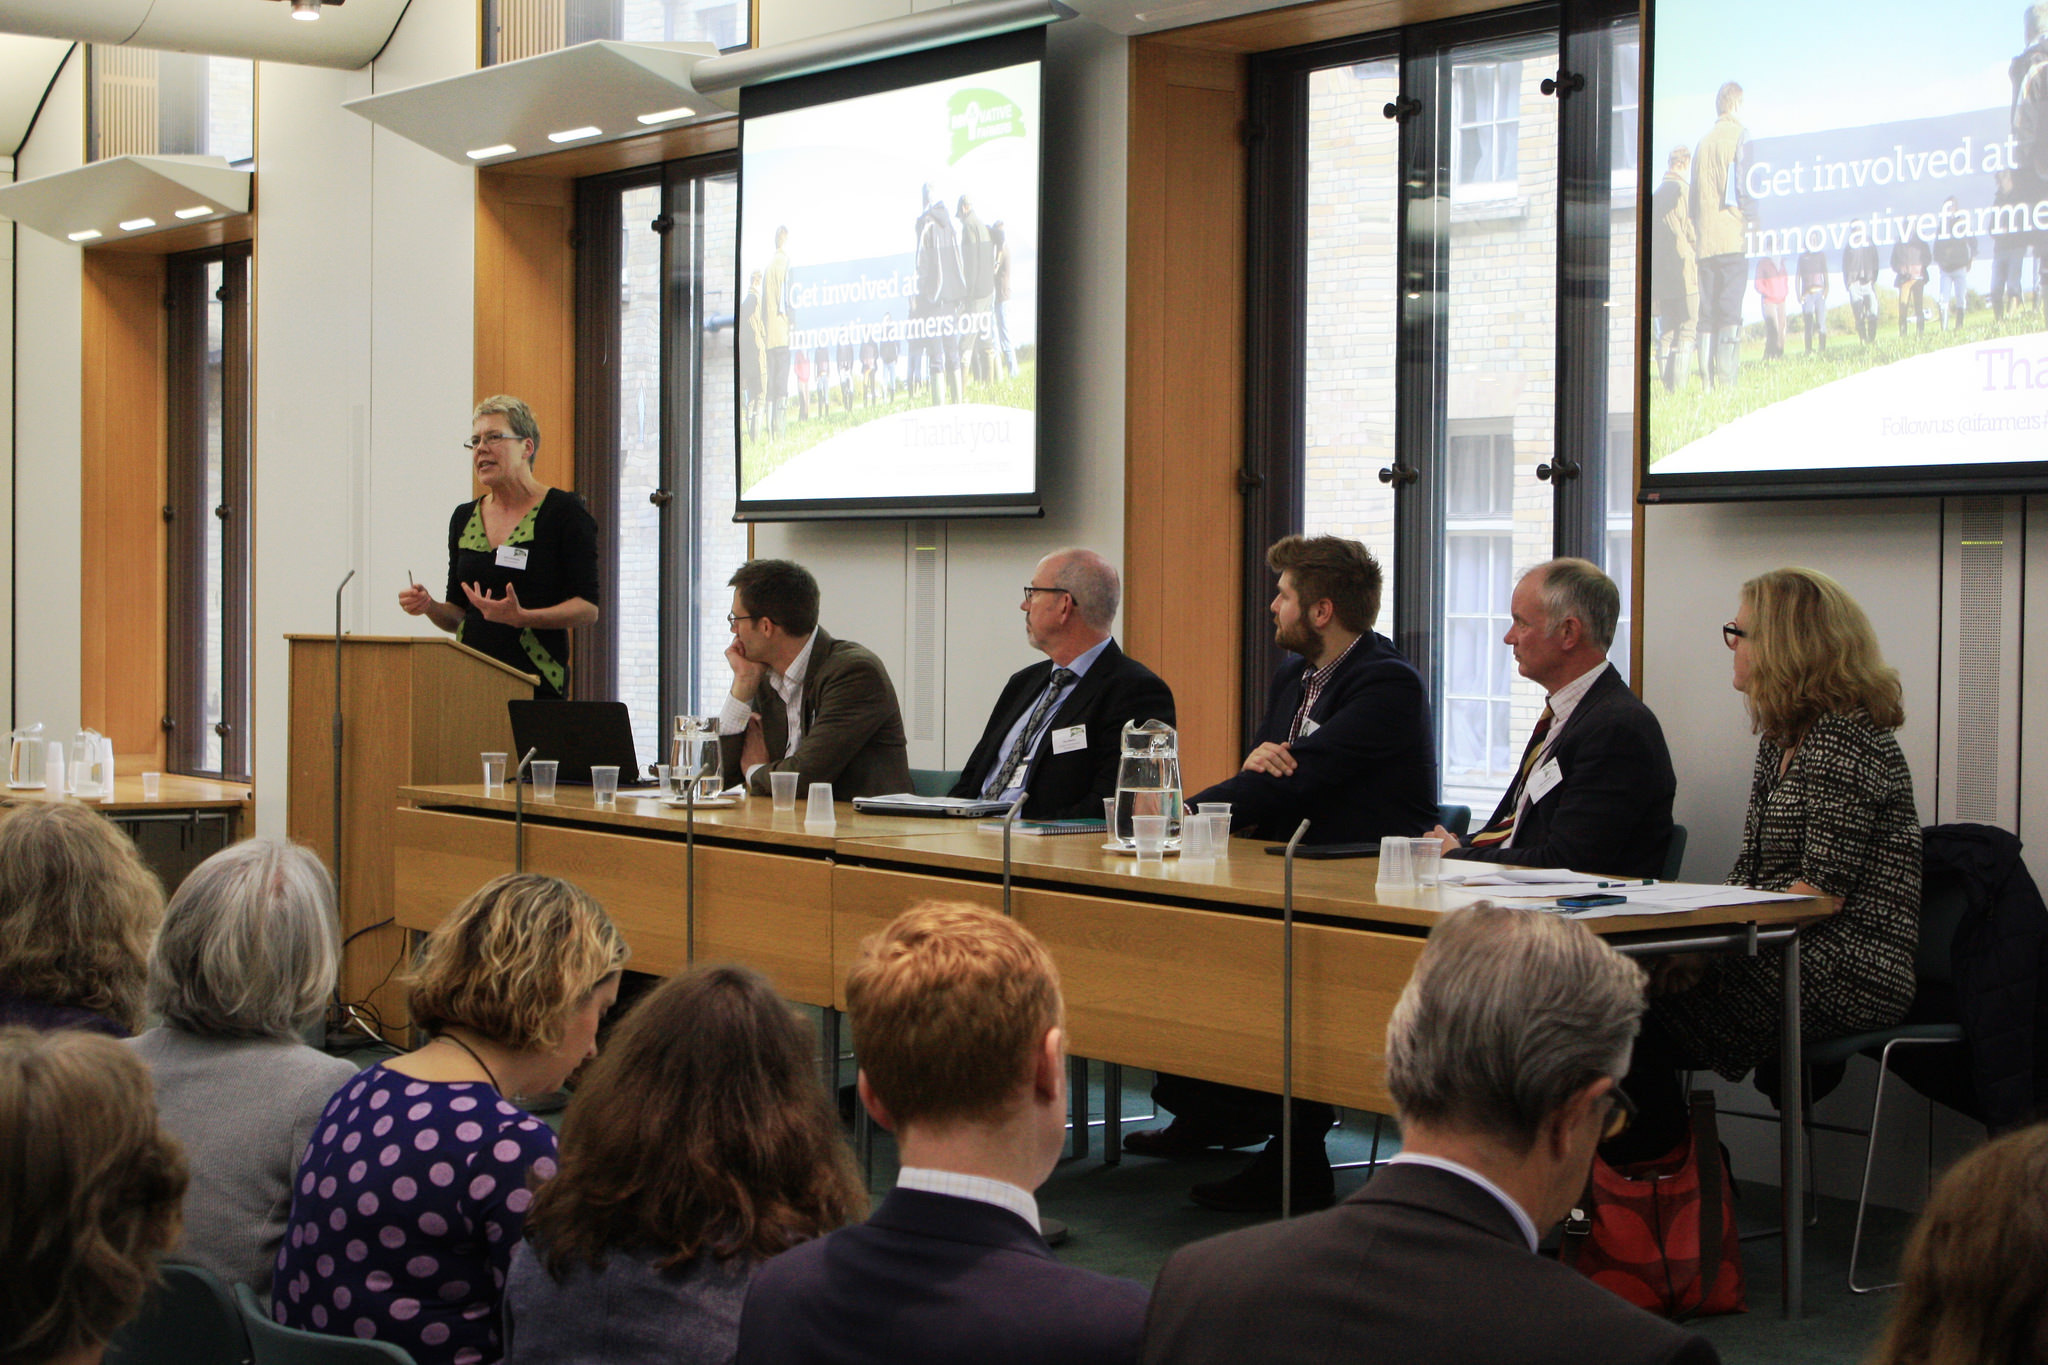 Helen Browning, CE of the Soil Association, speaking at the launch of Innovative Farmers